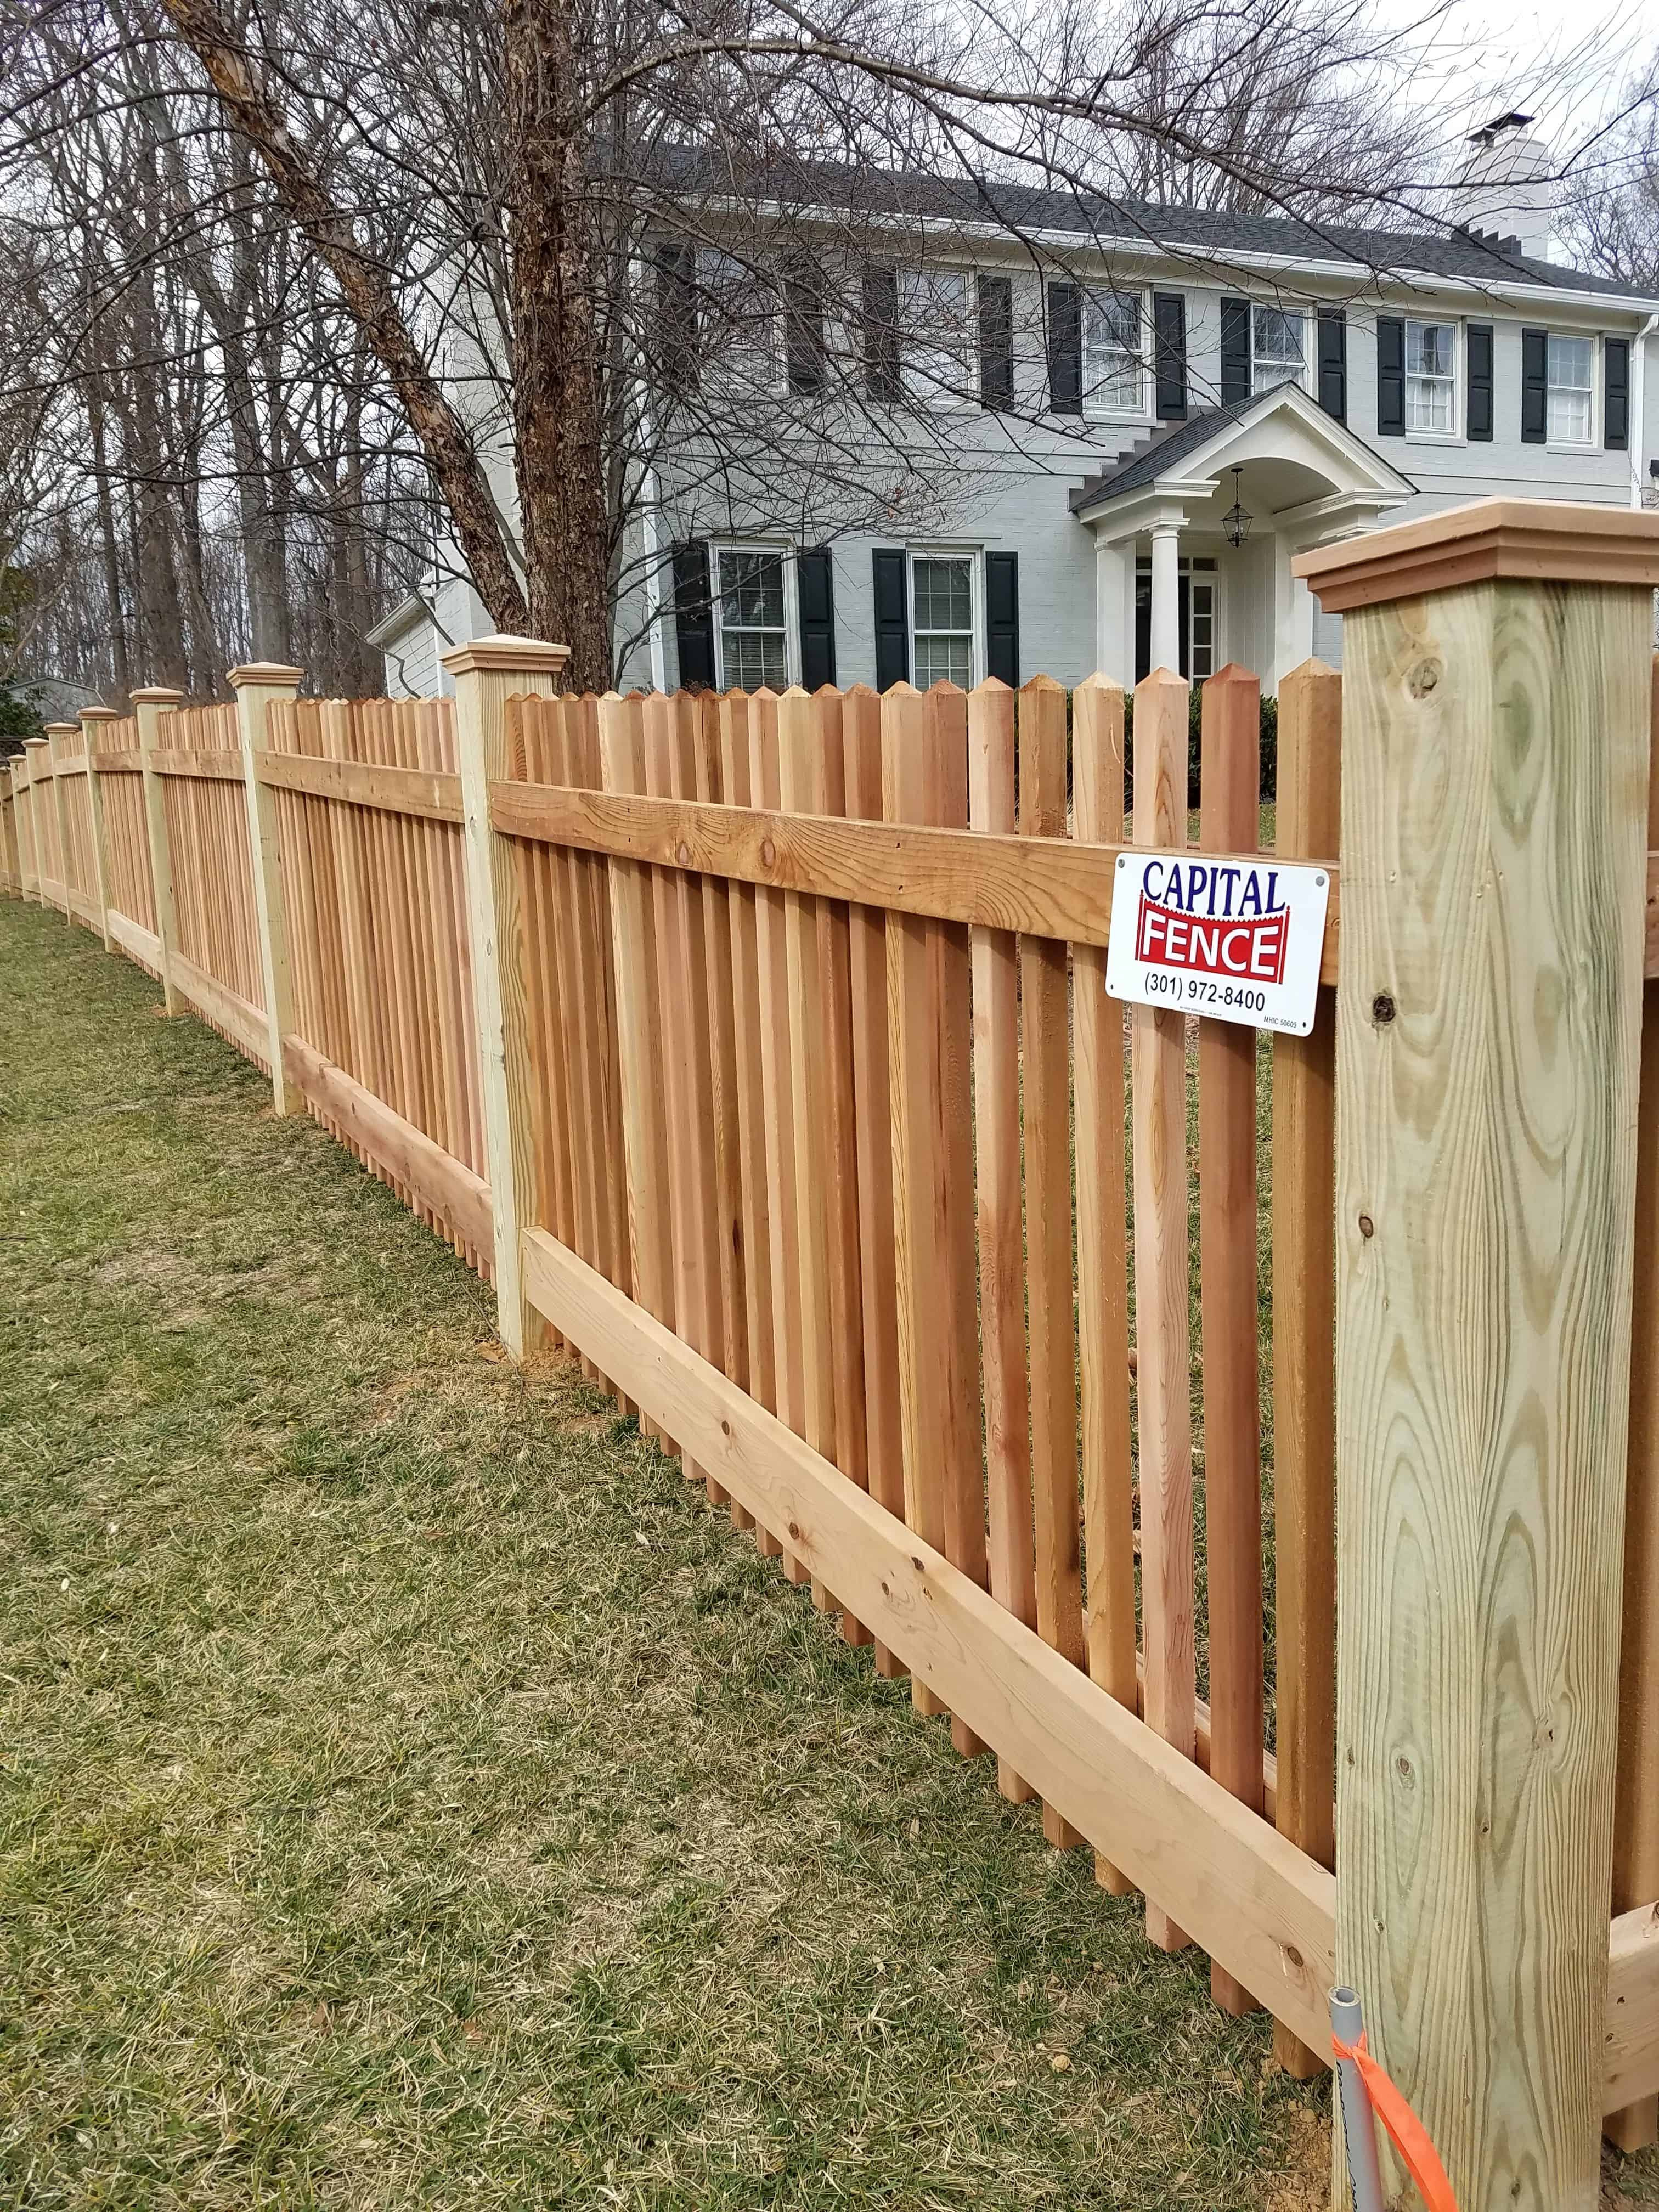 17 SIMPHOME poolesville picket wood fence wood picket fence in 2019 2099